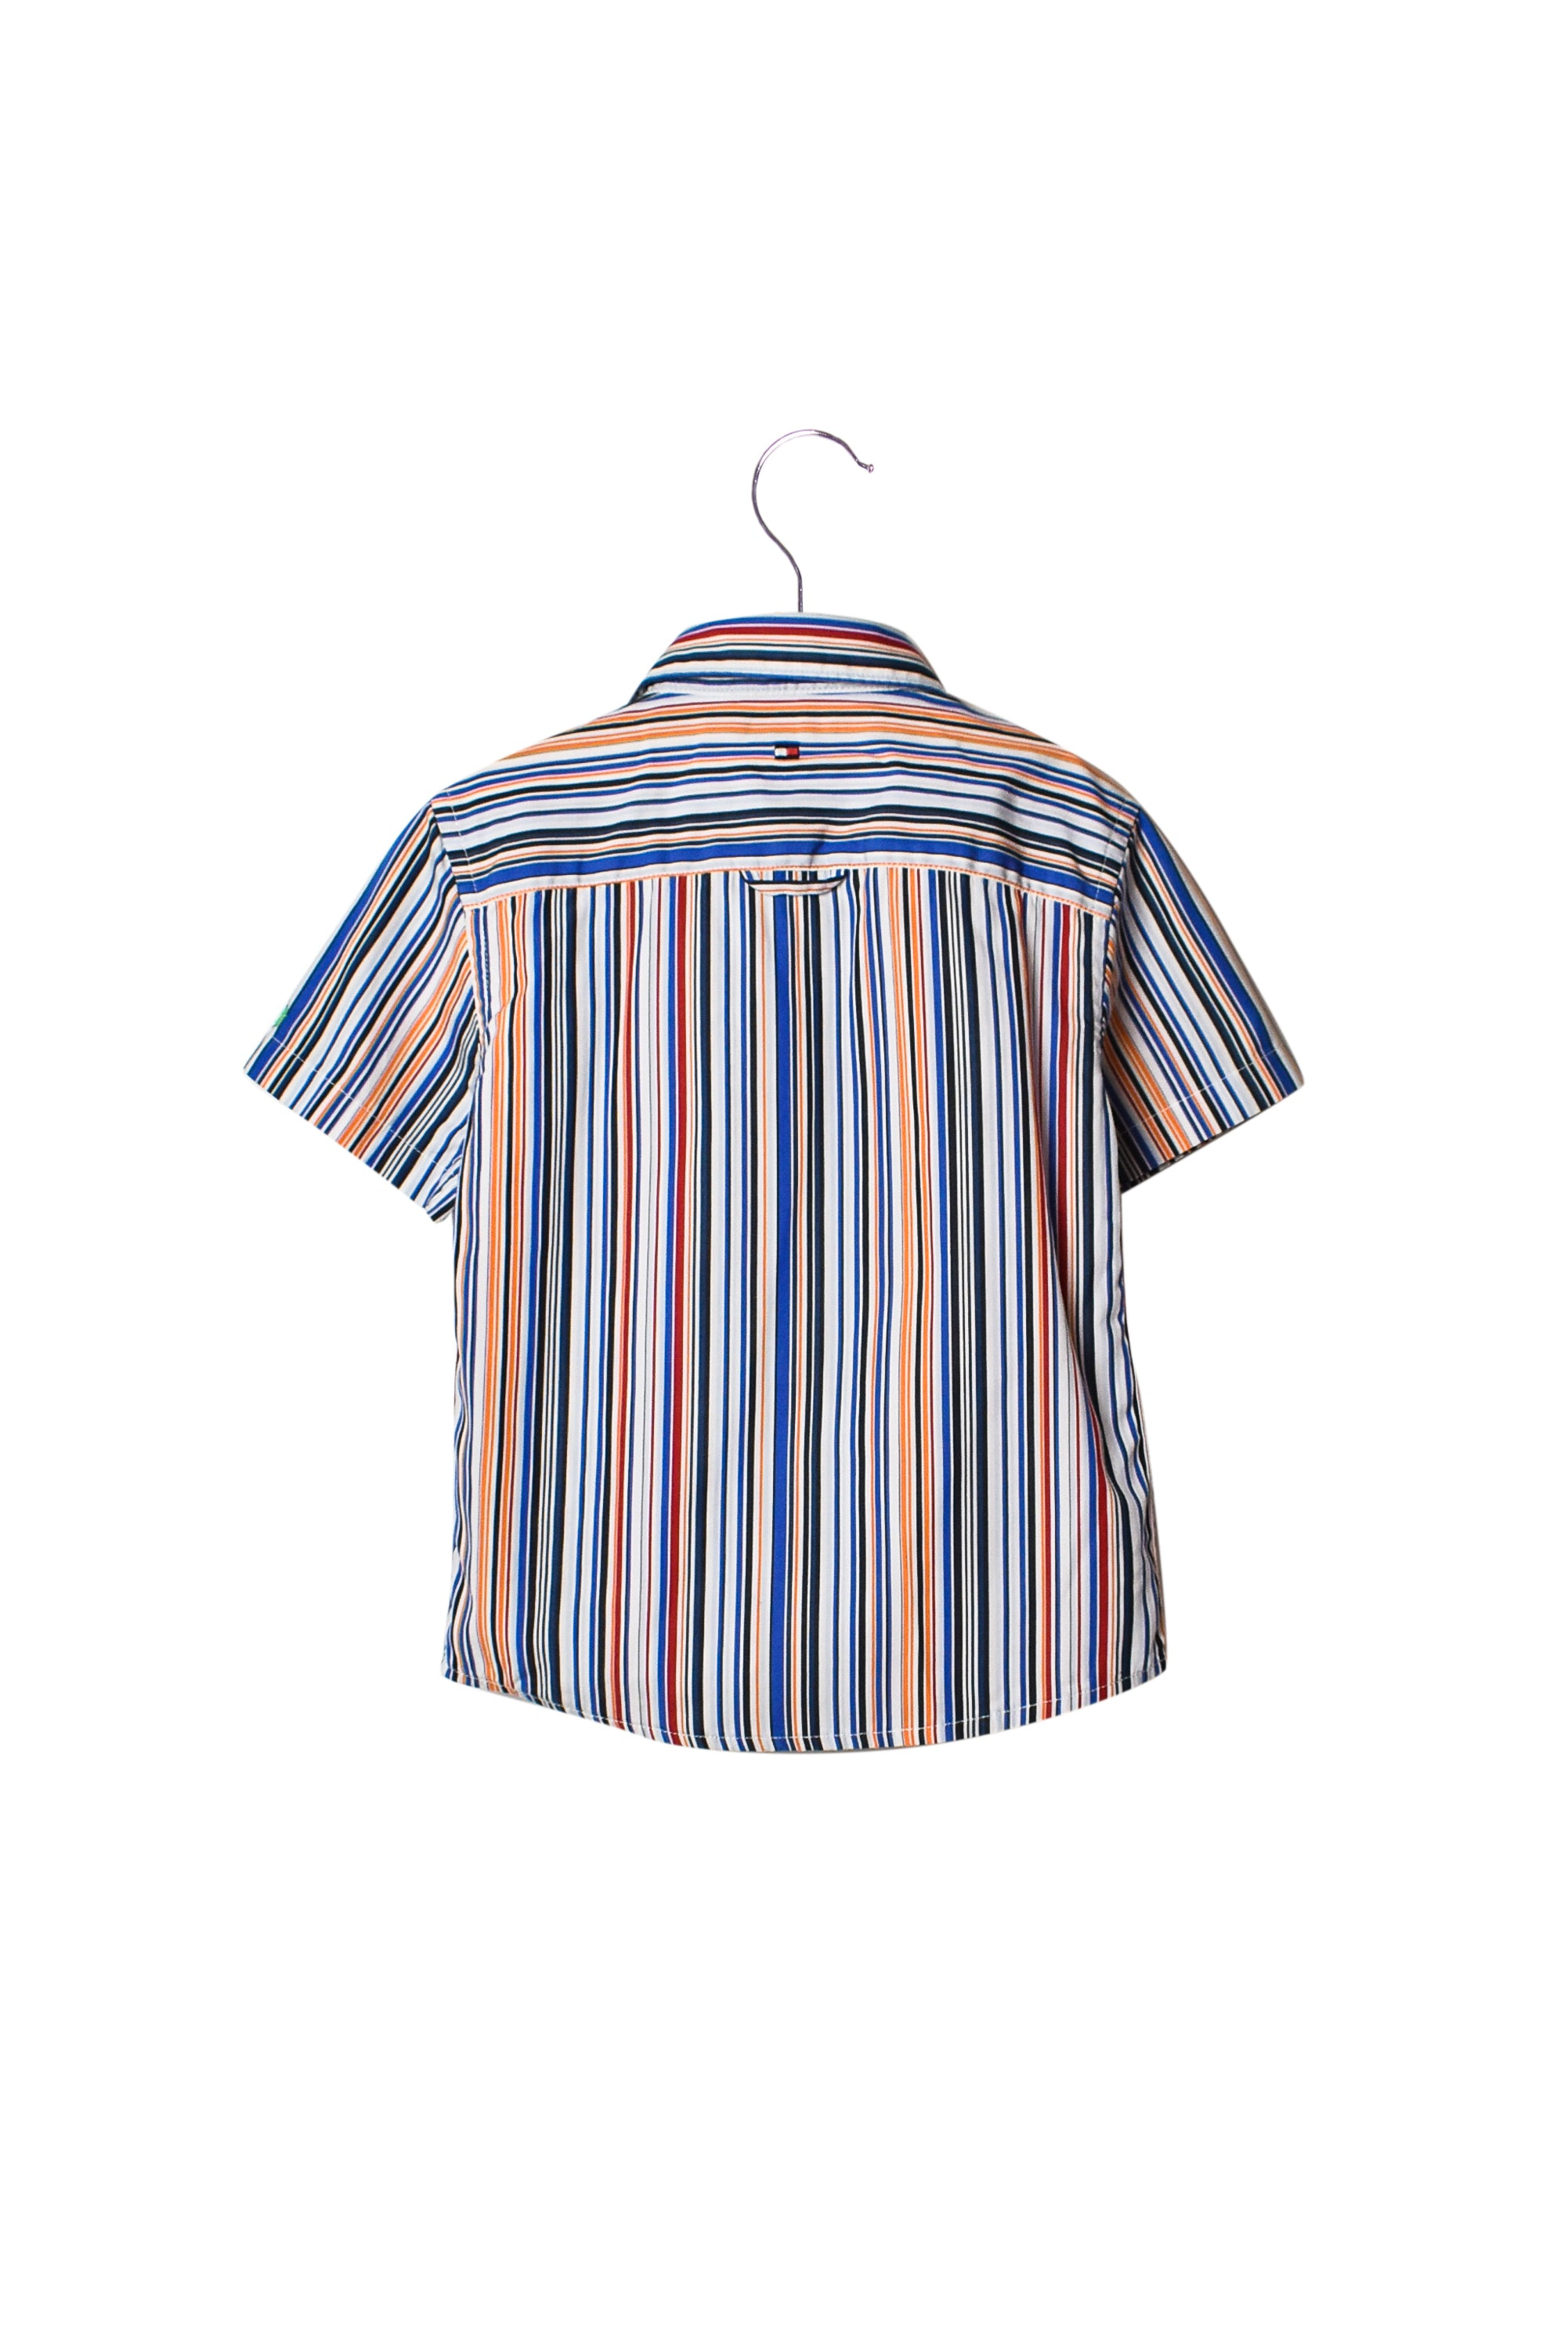 10007811 Tommy Hilfiger Baby~ Shirt 12-18M at Retykle